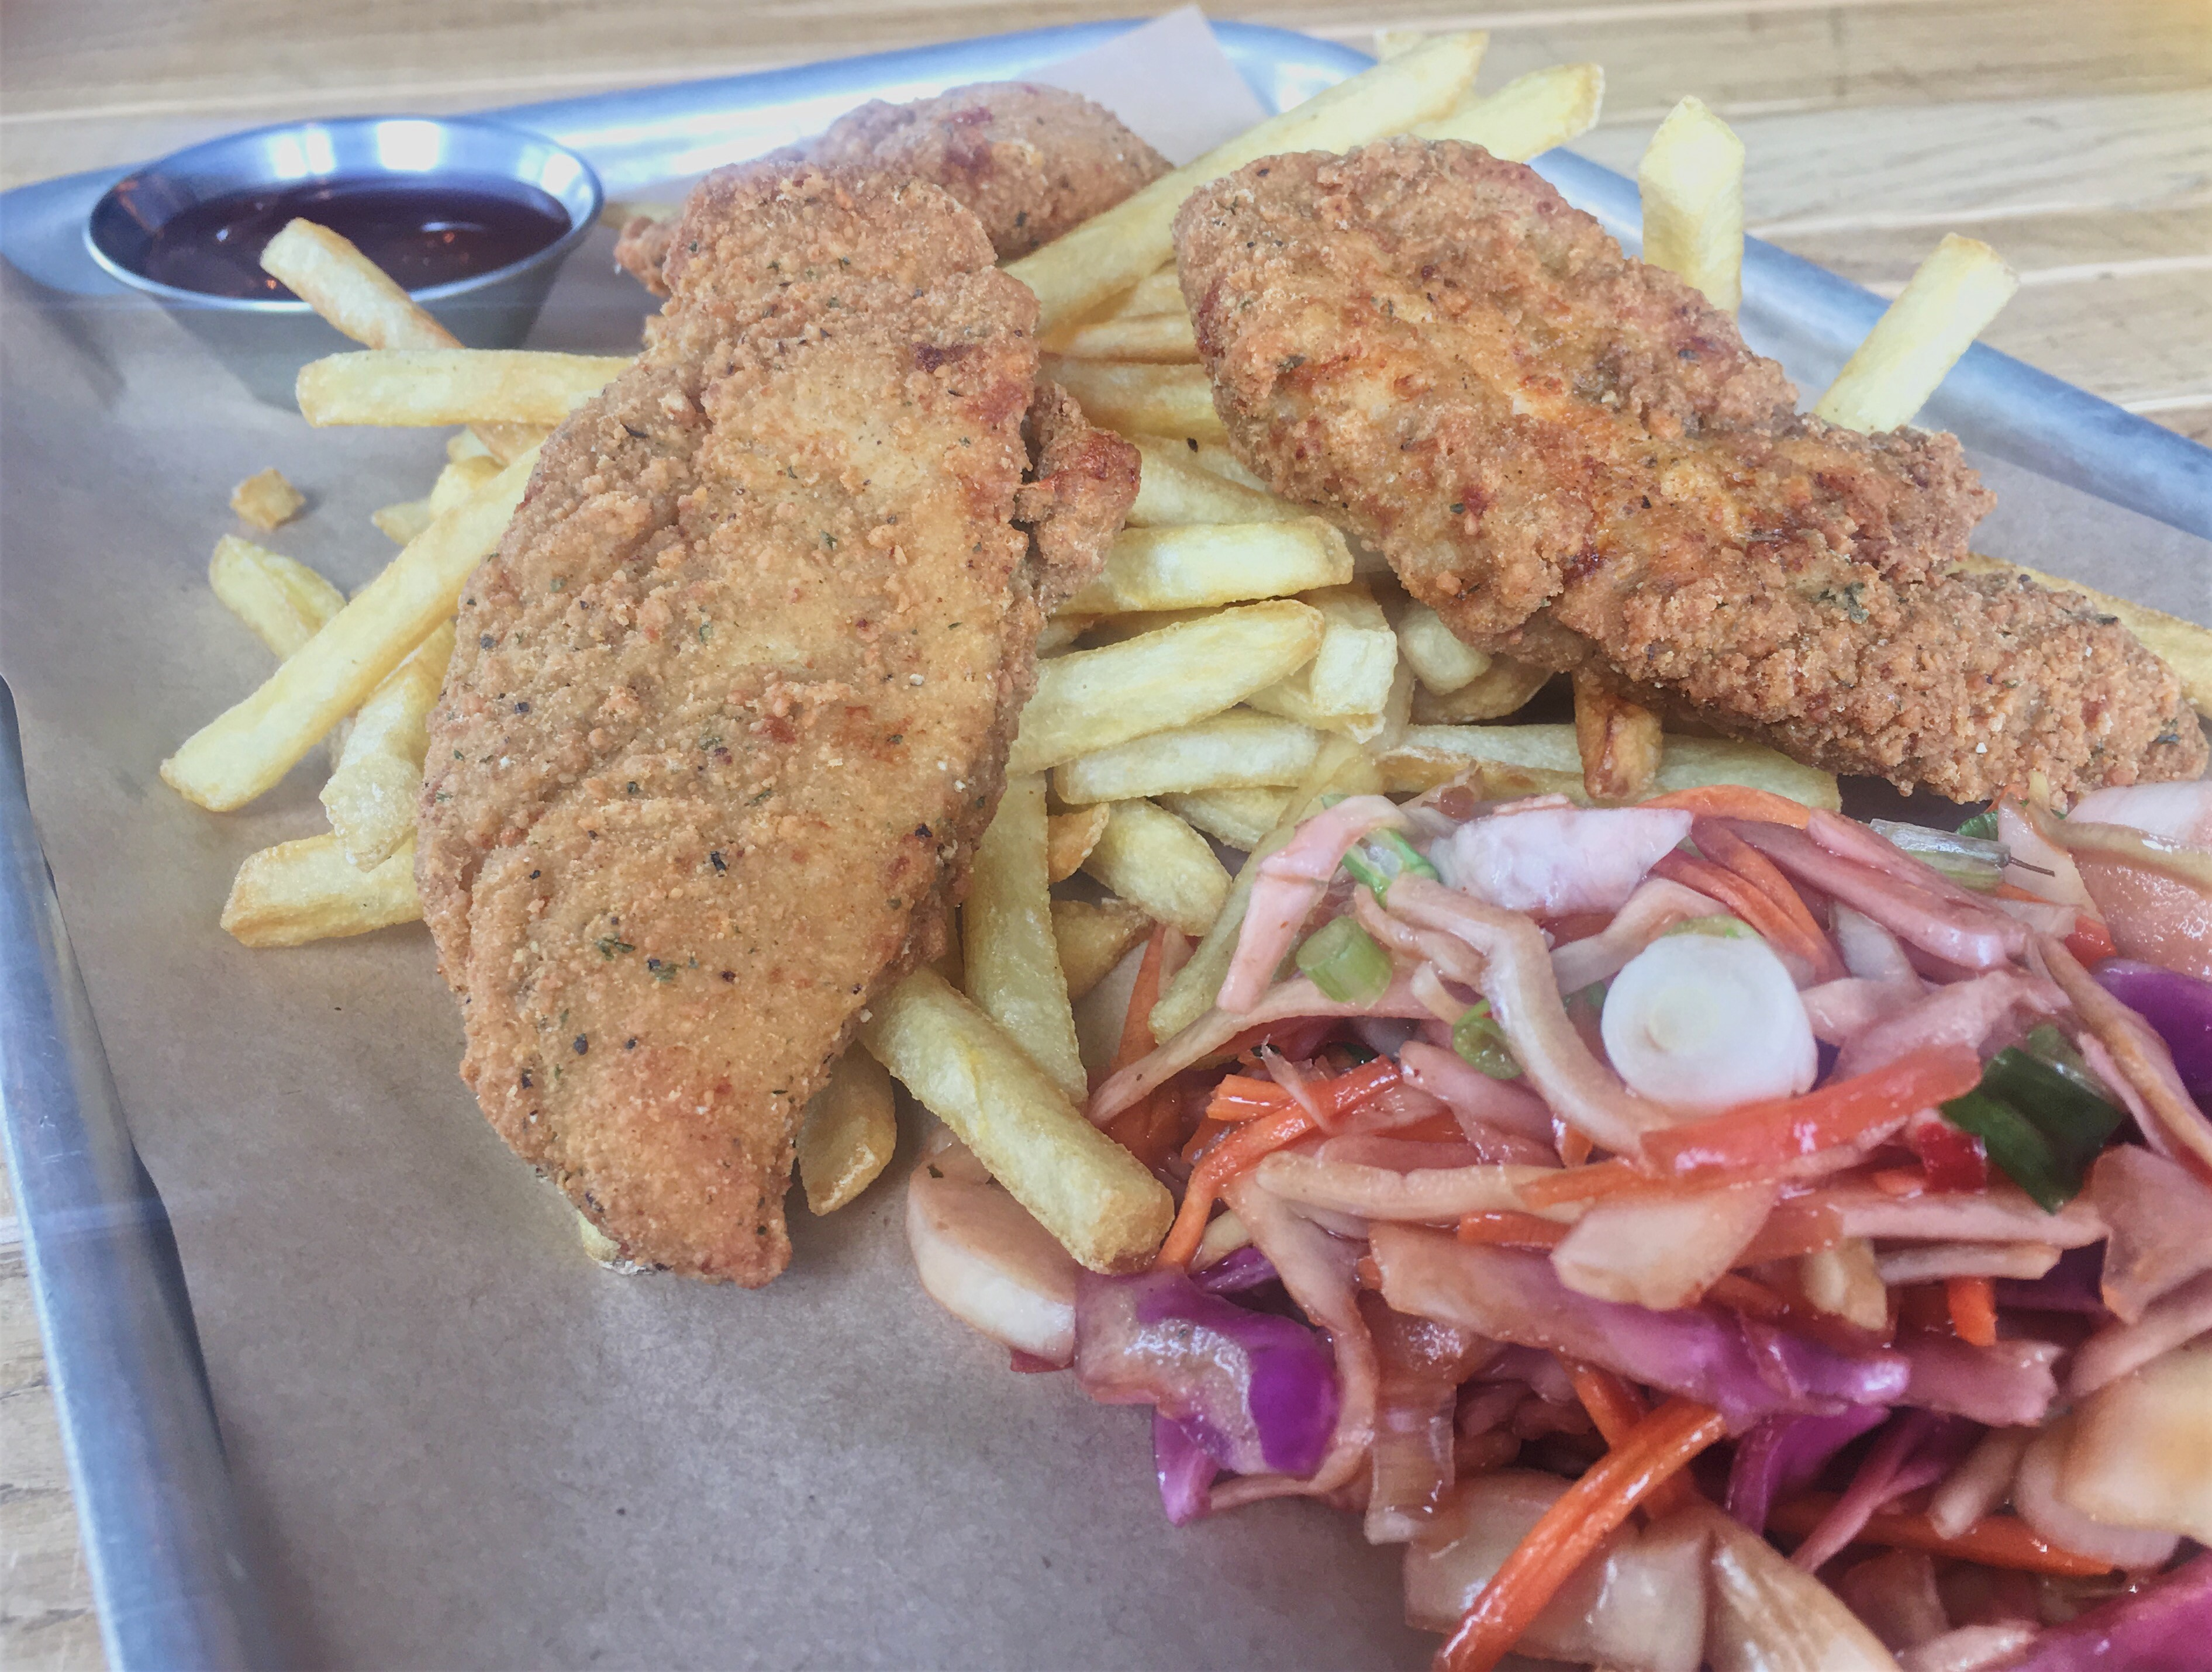 Southern fried chicken and chips at The Woodville, Cathays